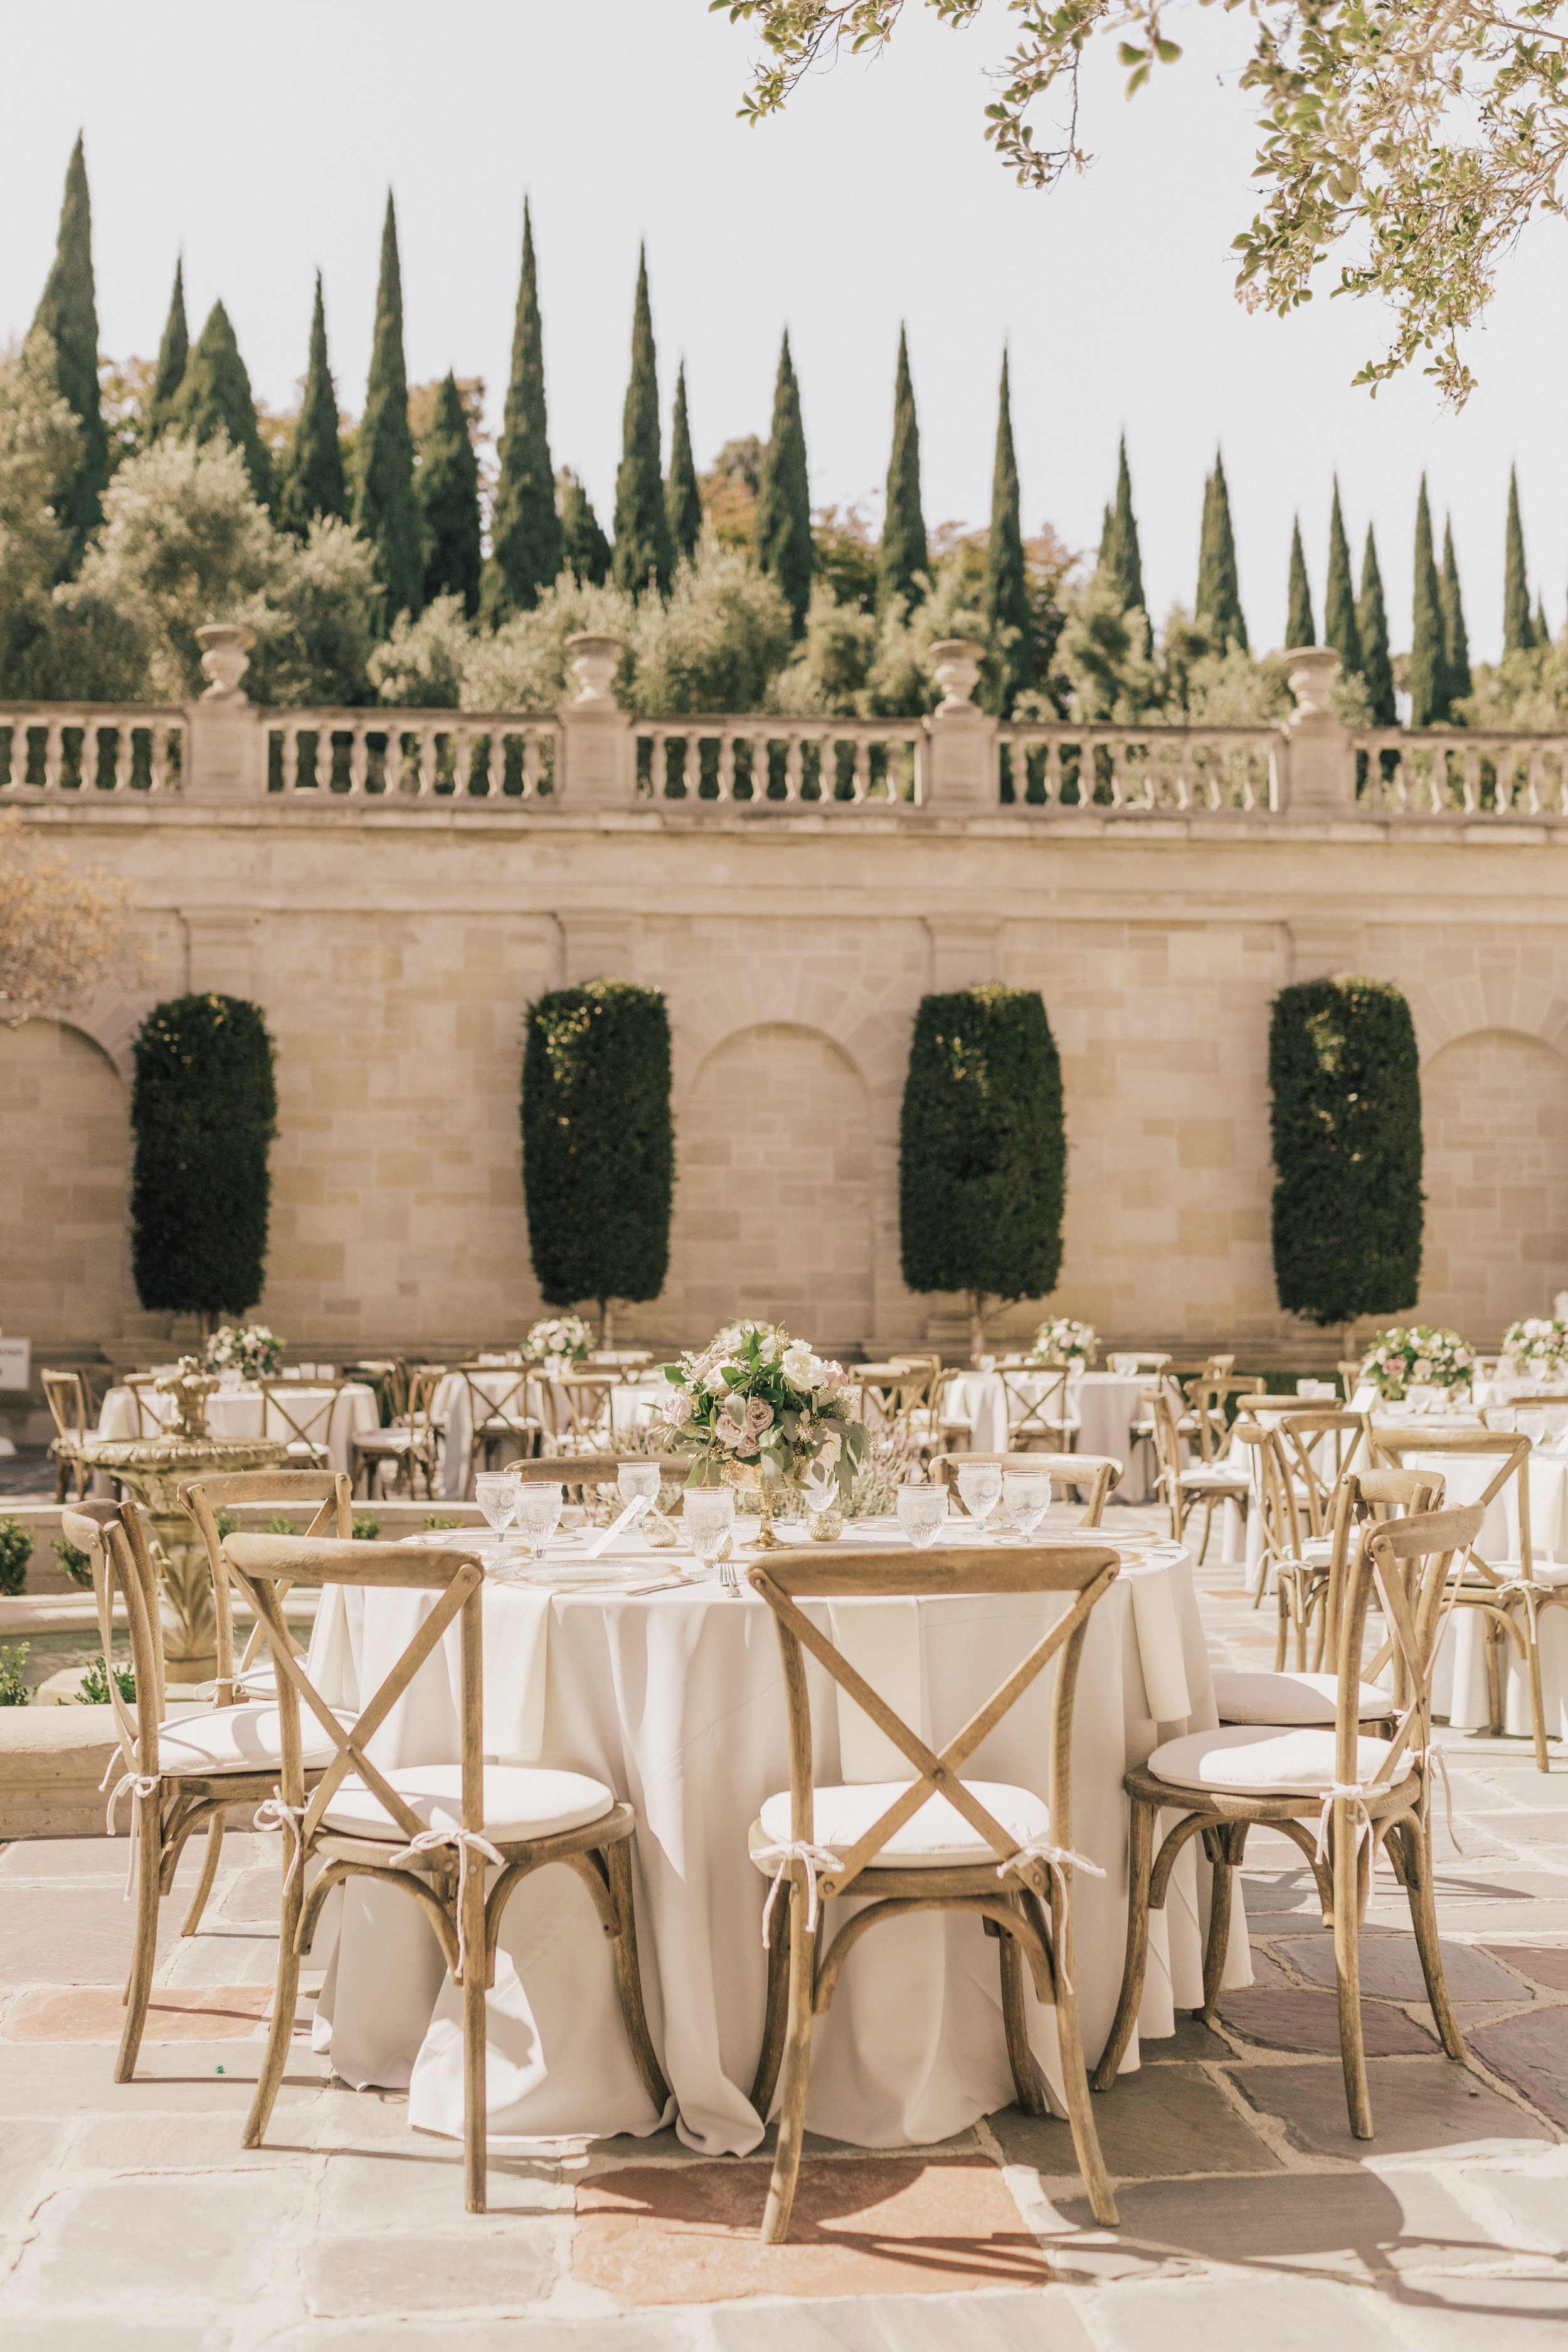 Greystone Mansion, Greystone Mansion Beverly Hills, Beverly Hills Wedding, California Estate Wedding, lavender white gold centerpiece, gold rimmed charger, clear goblet, mauve floral centerpiece ideas